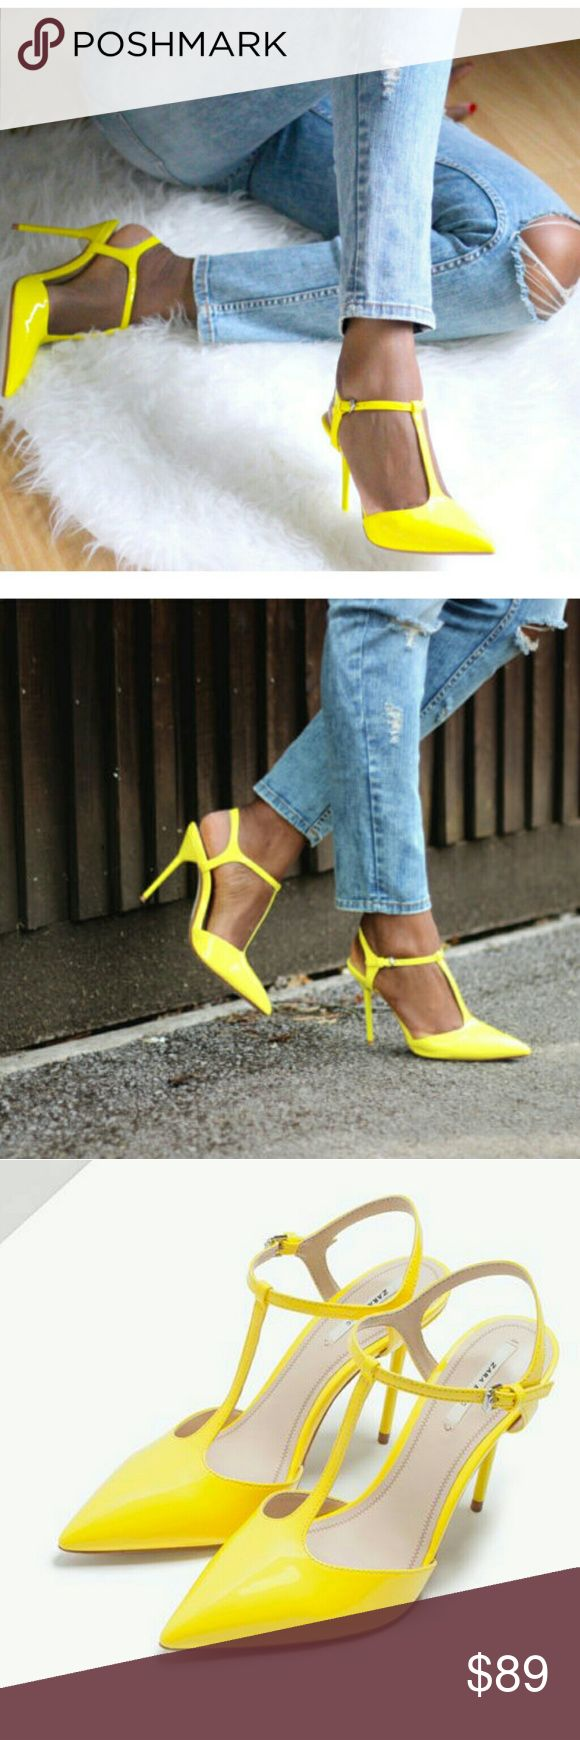 ZARA NEON YELLOW HIGH HEEL SHOES BRAND NEW ZARA NEON YELLOW HIGH HEEL SHOES BRAND NEW Zara Shoes Heels